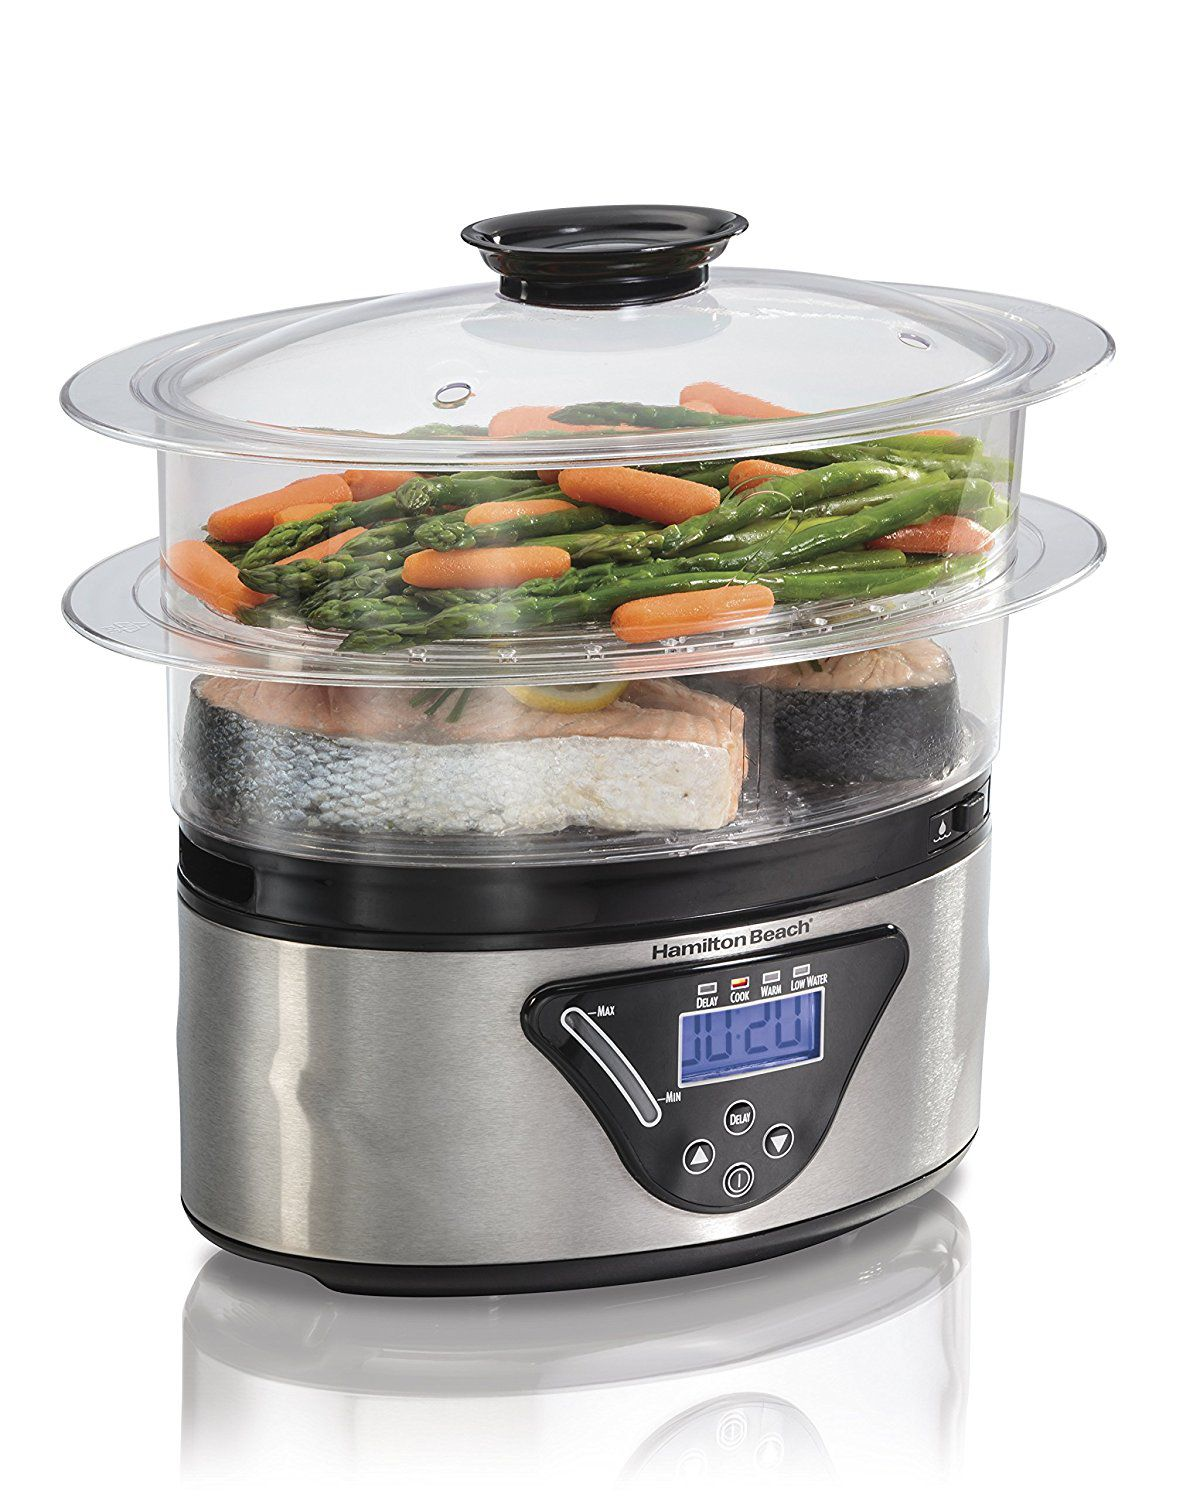 Where Can I Buy A Food Steamer